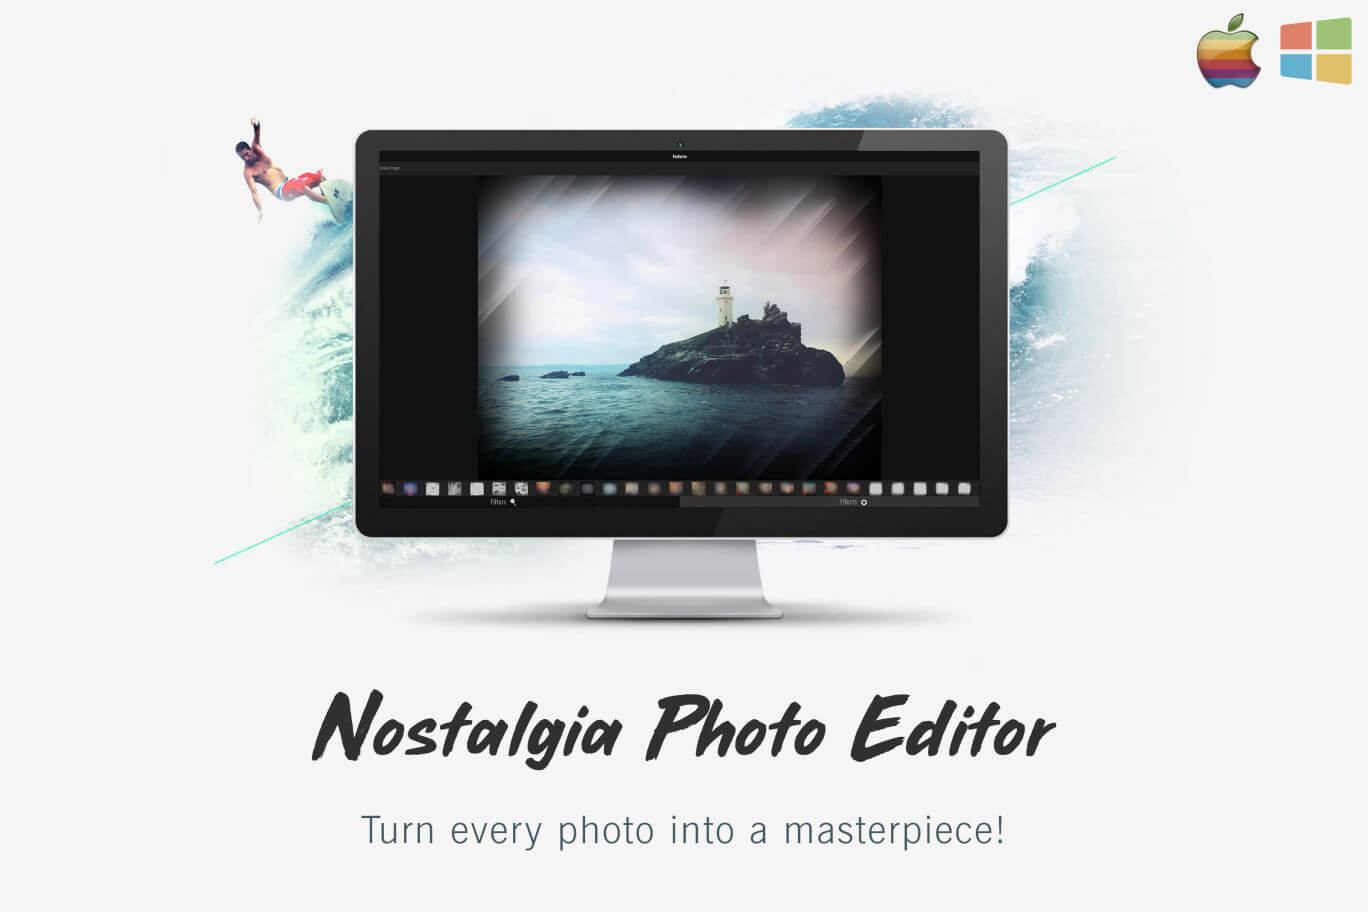 Nostalgia Photo Editor Boxshot